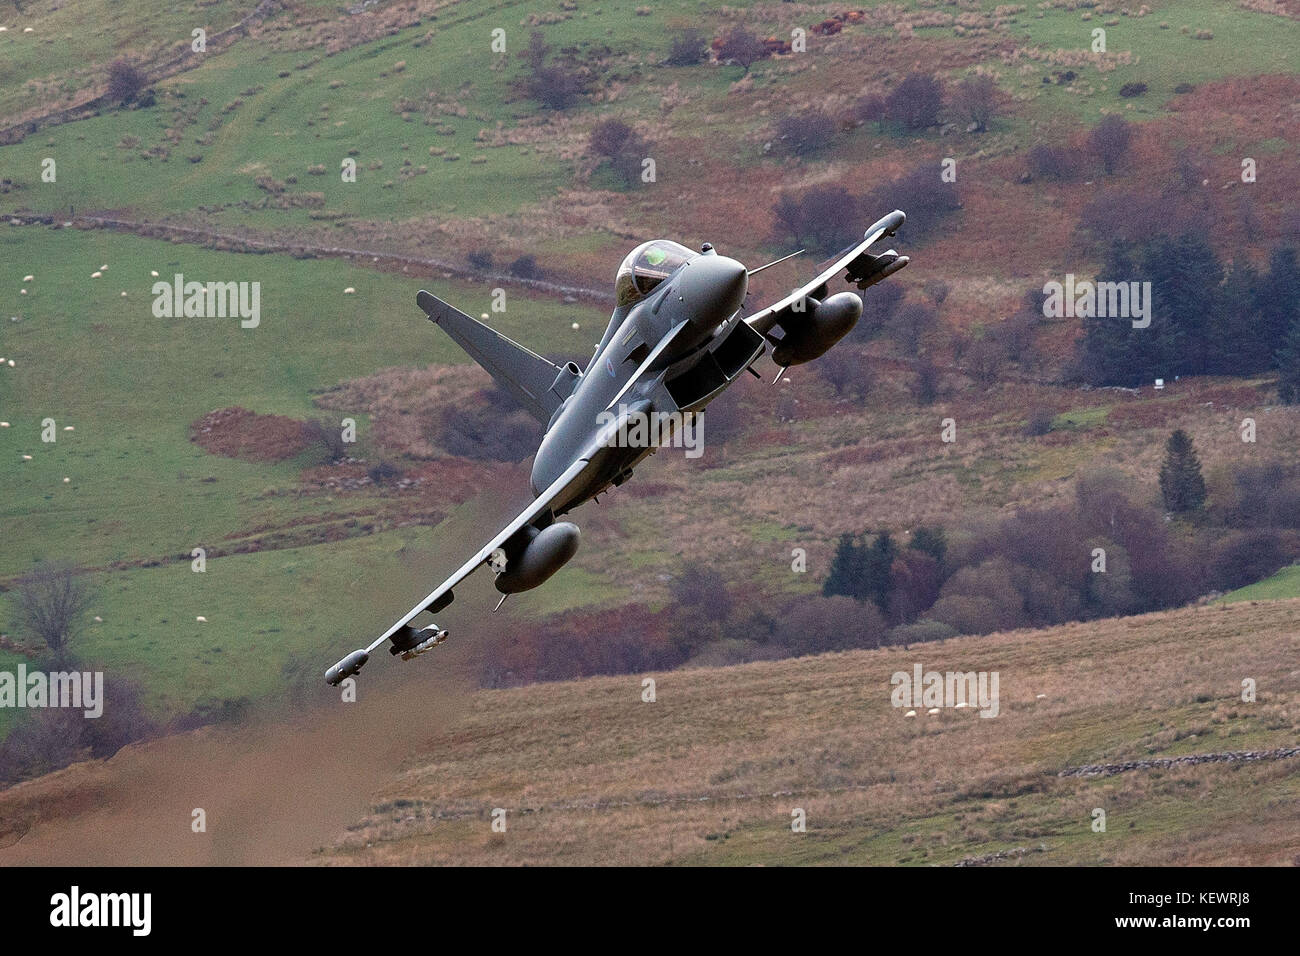 Royal Air Force Eurofighter Typhoon FGR4 flies low level through the Mach Loop, Machynlleth, Wales, United Kingdom - Stock Image